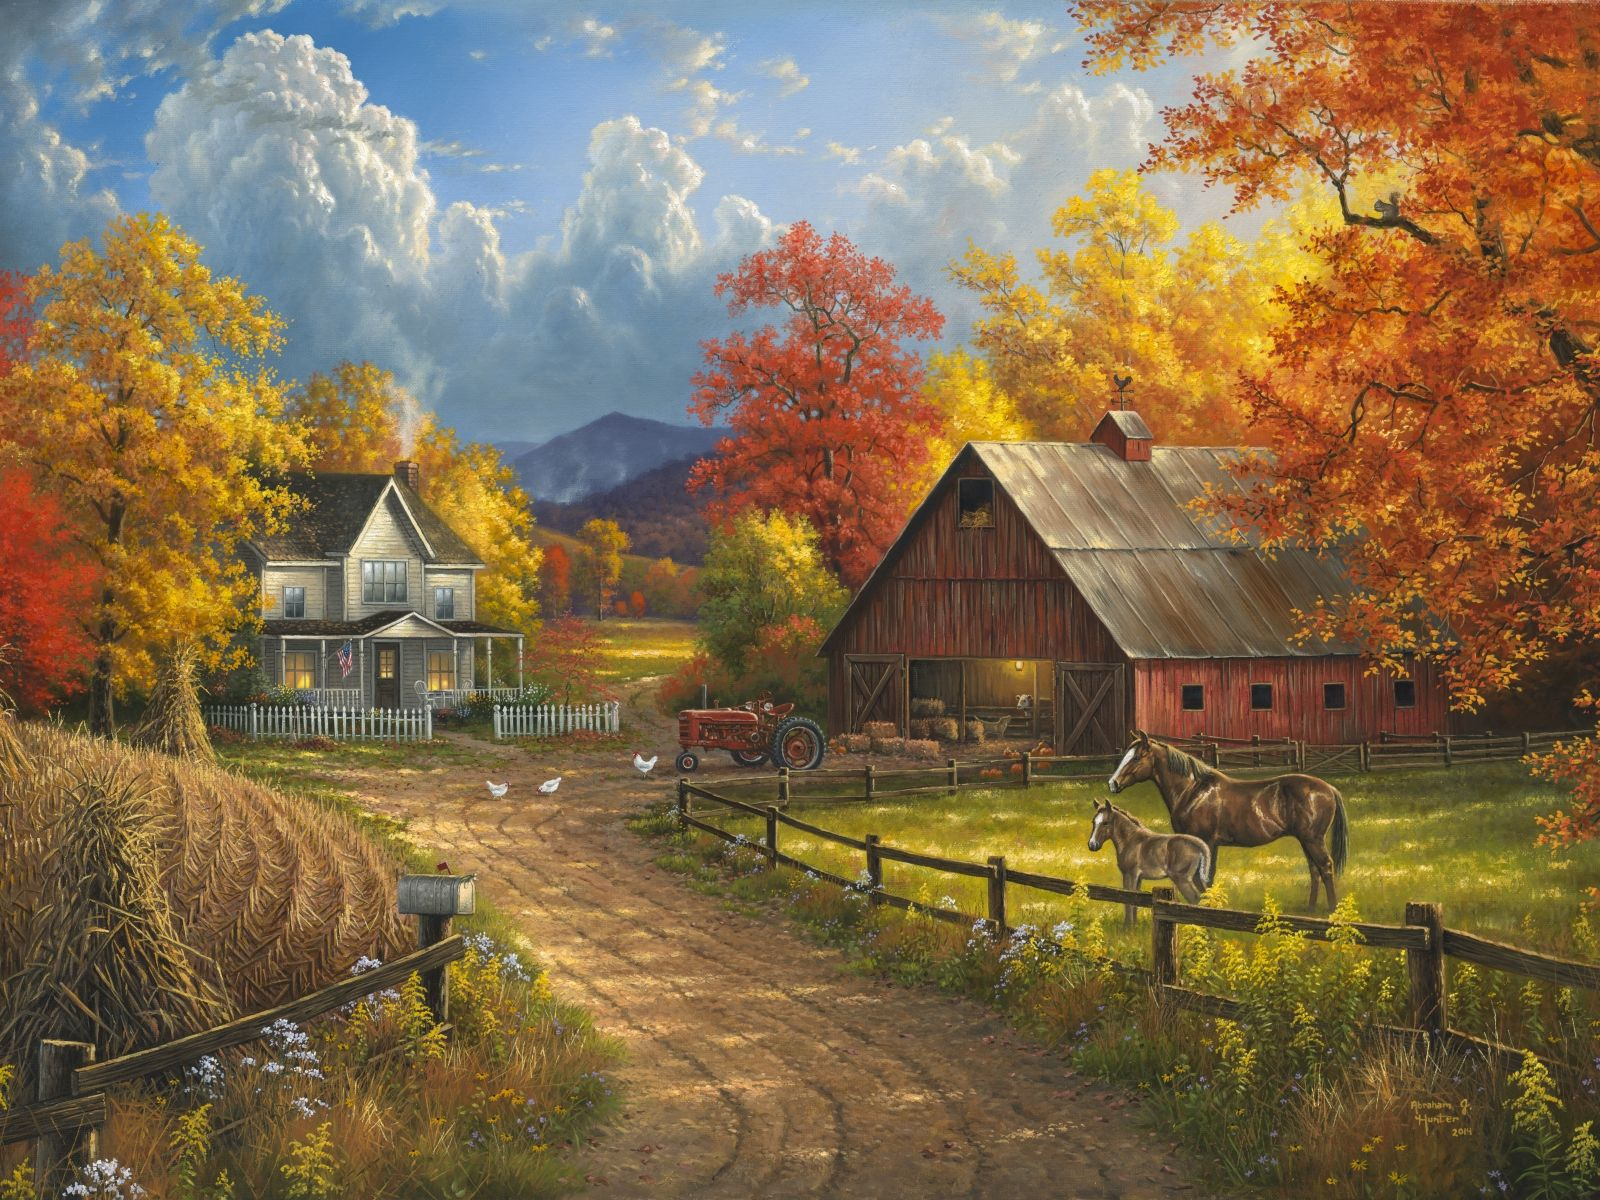 a4fab796f909a433a692745da09f180b jpg 1600 215 1200 Rustic Country Paintings id=44794